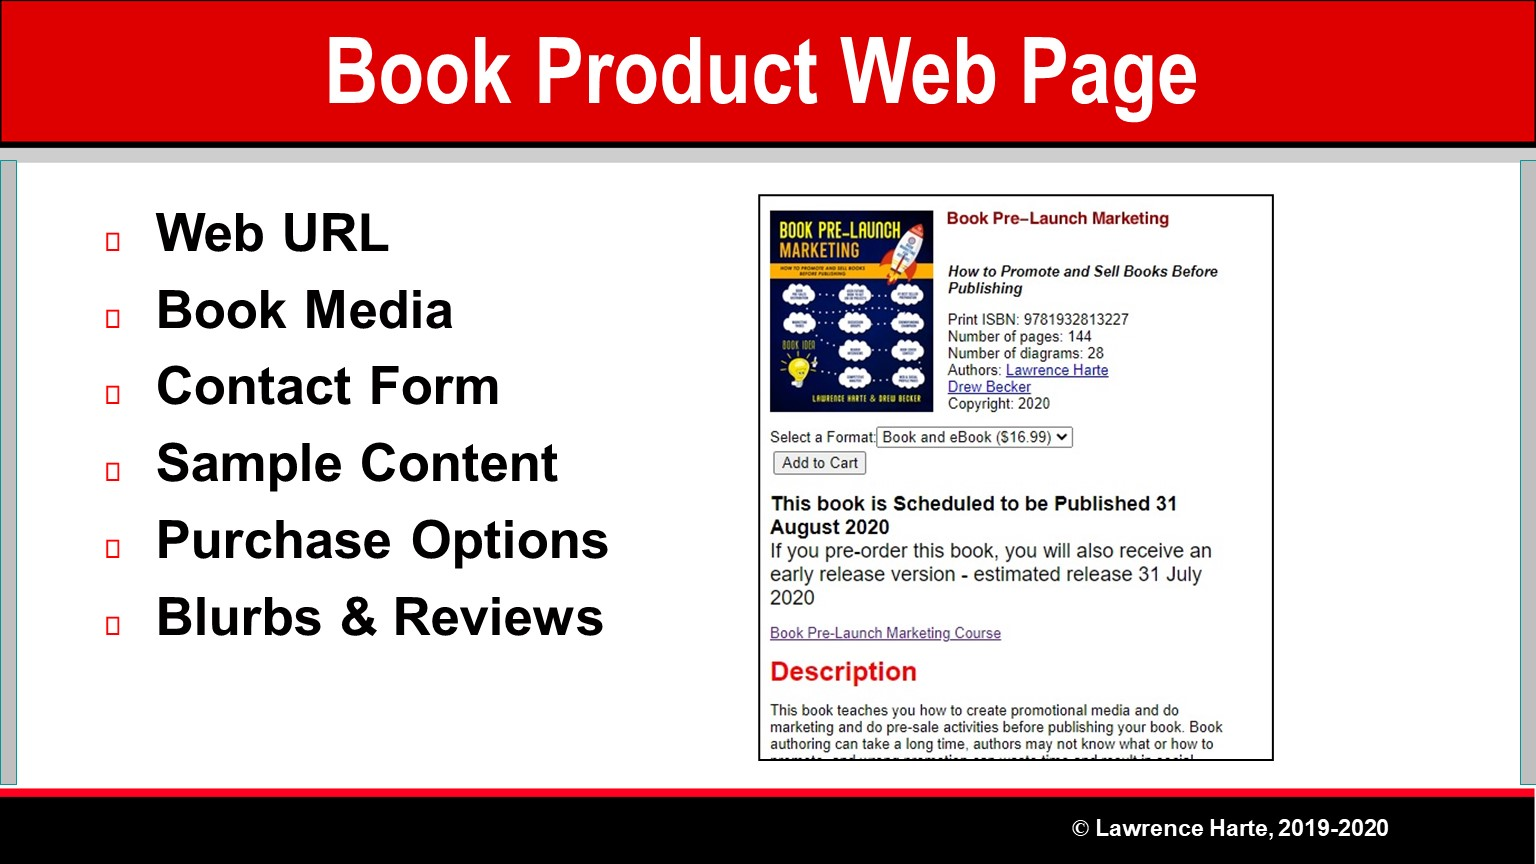 Book Pre-Launch Marketing Product Web Page